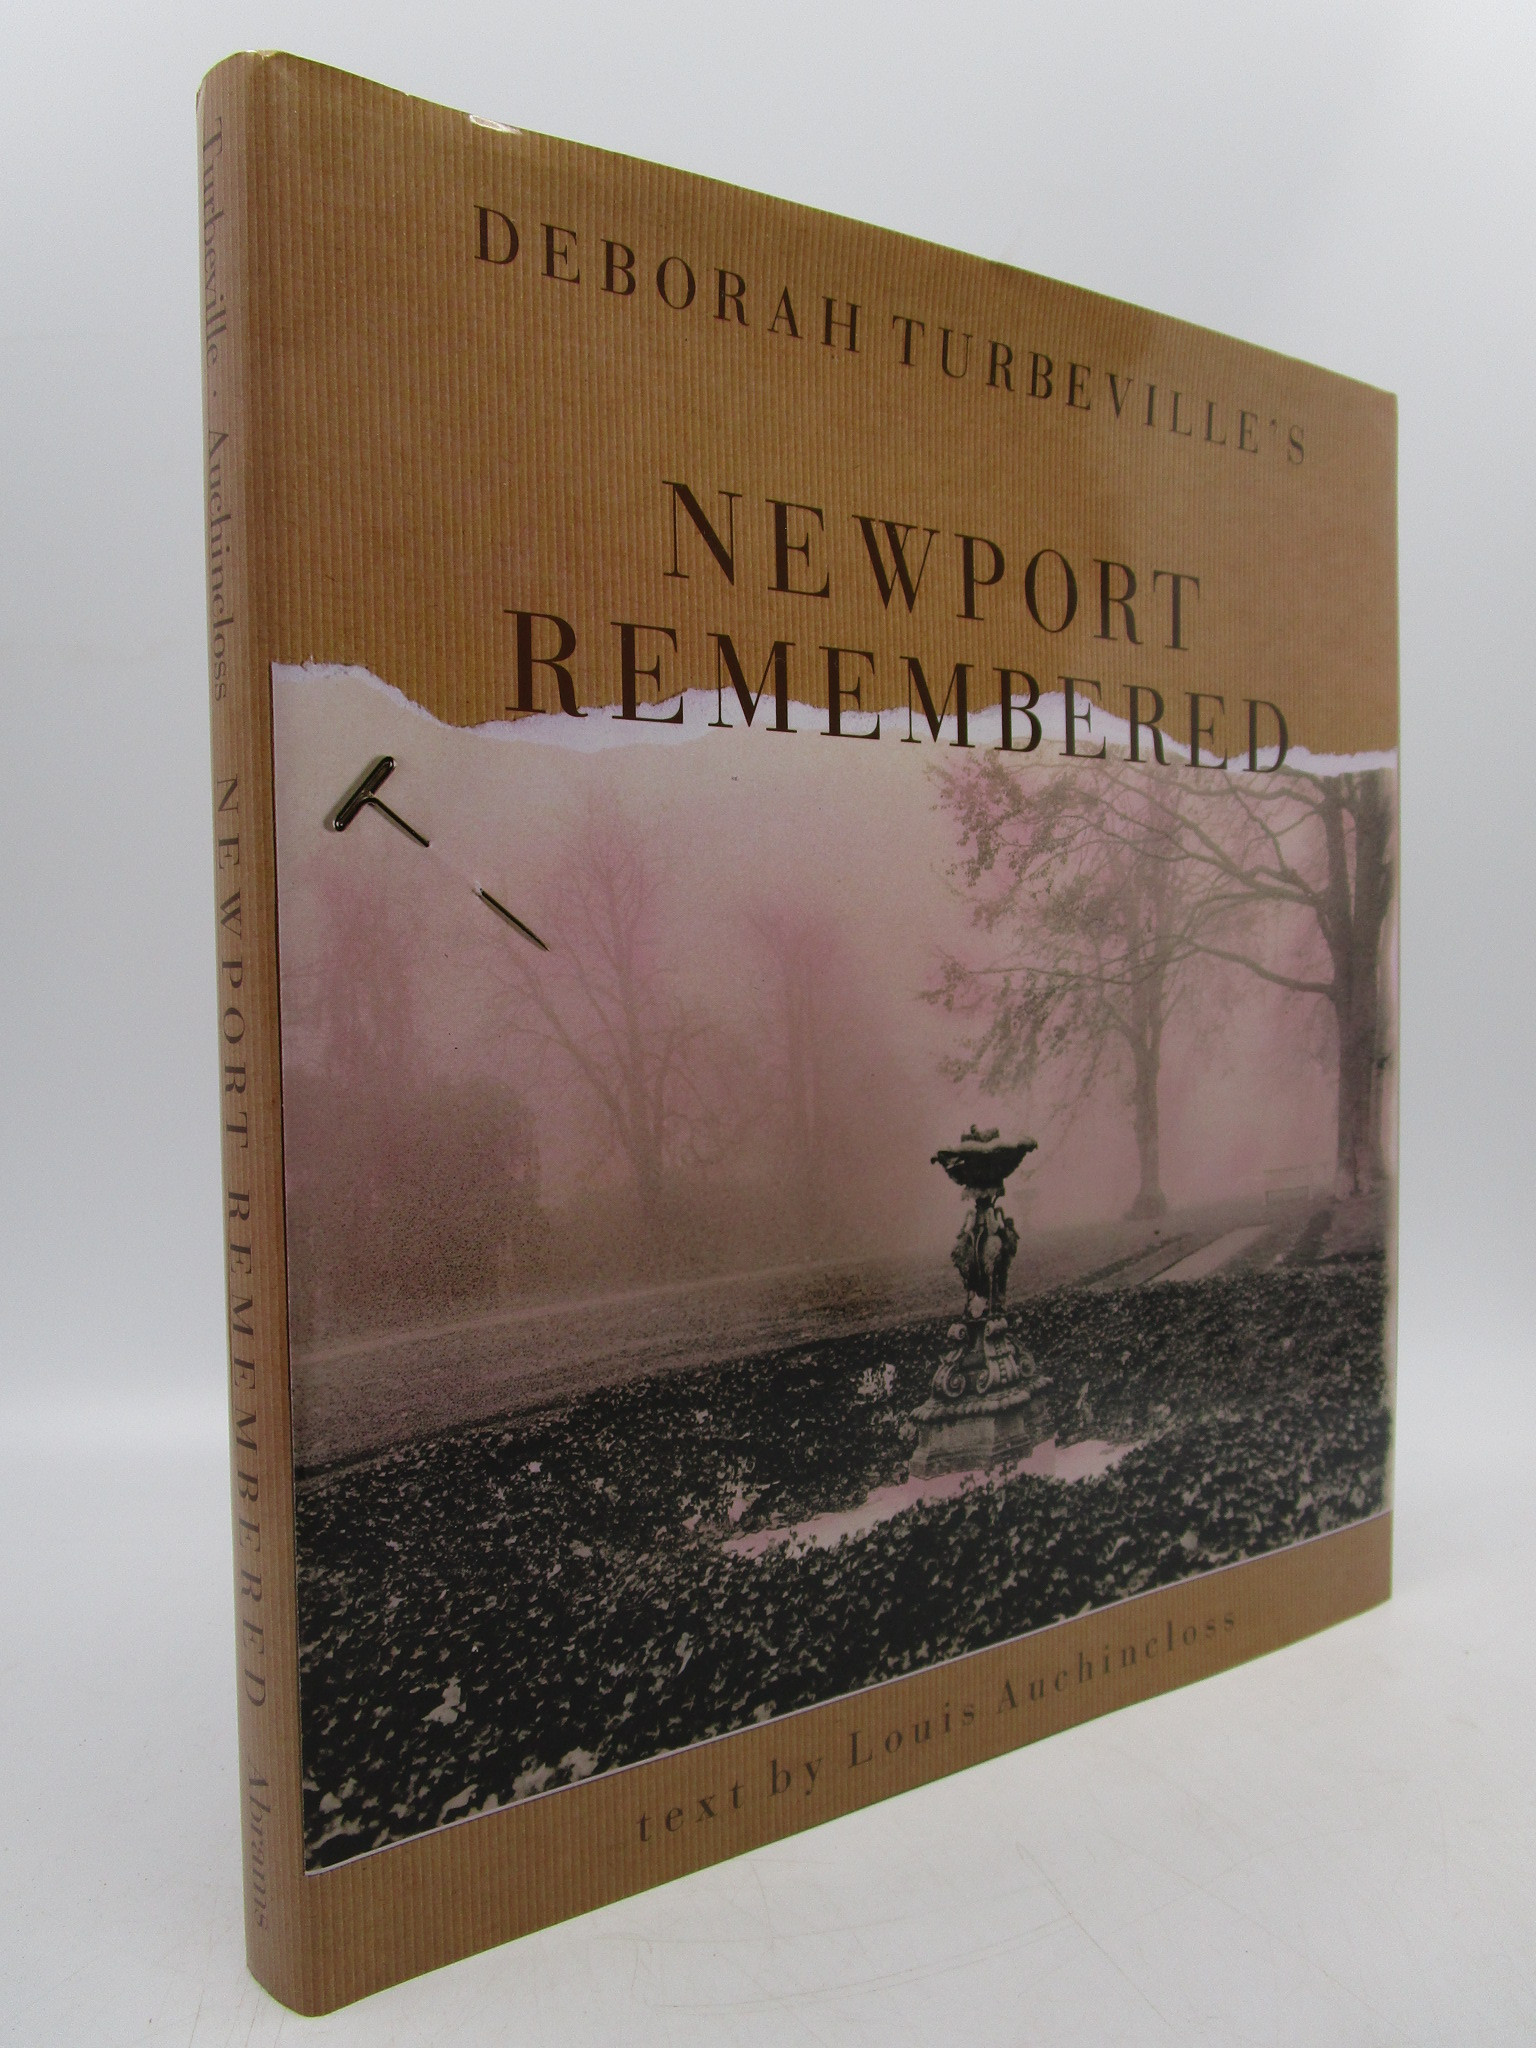 Image for Deborah Turbeville's Newport Remembered: A Photographic Portrait of a Gilded Past